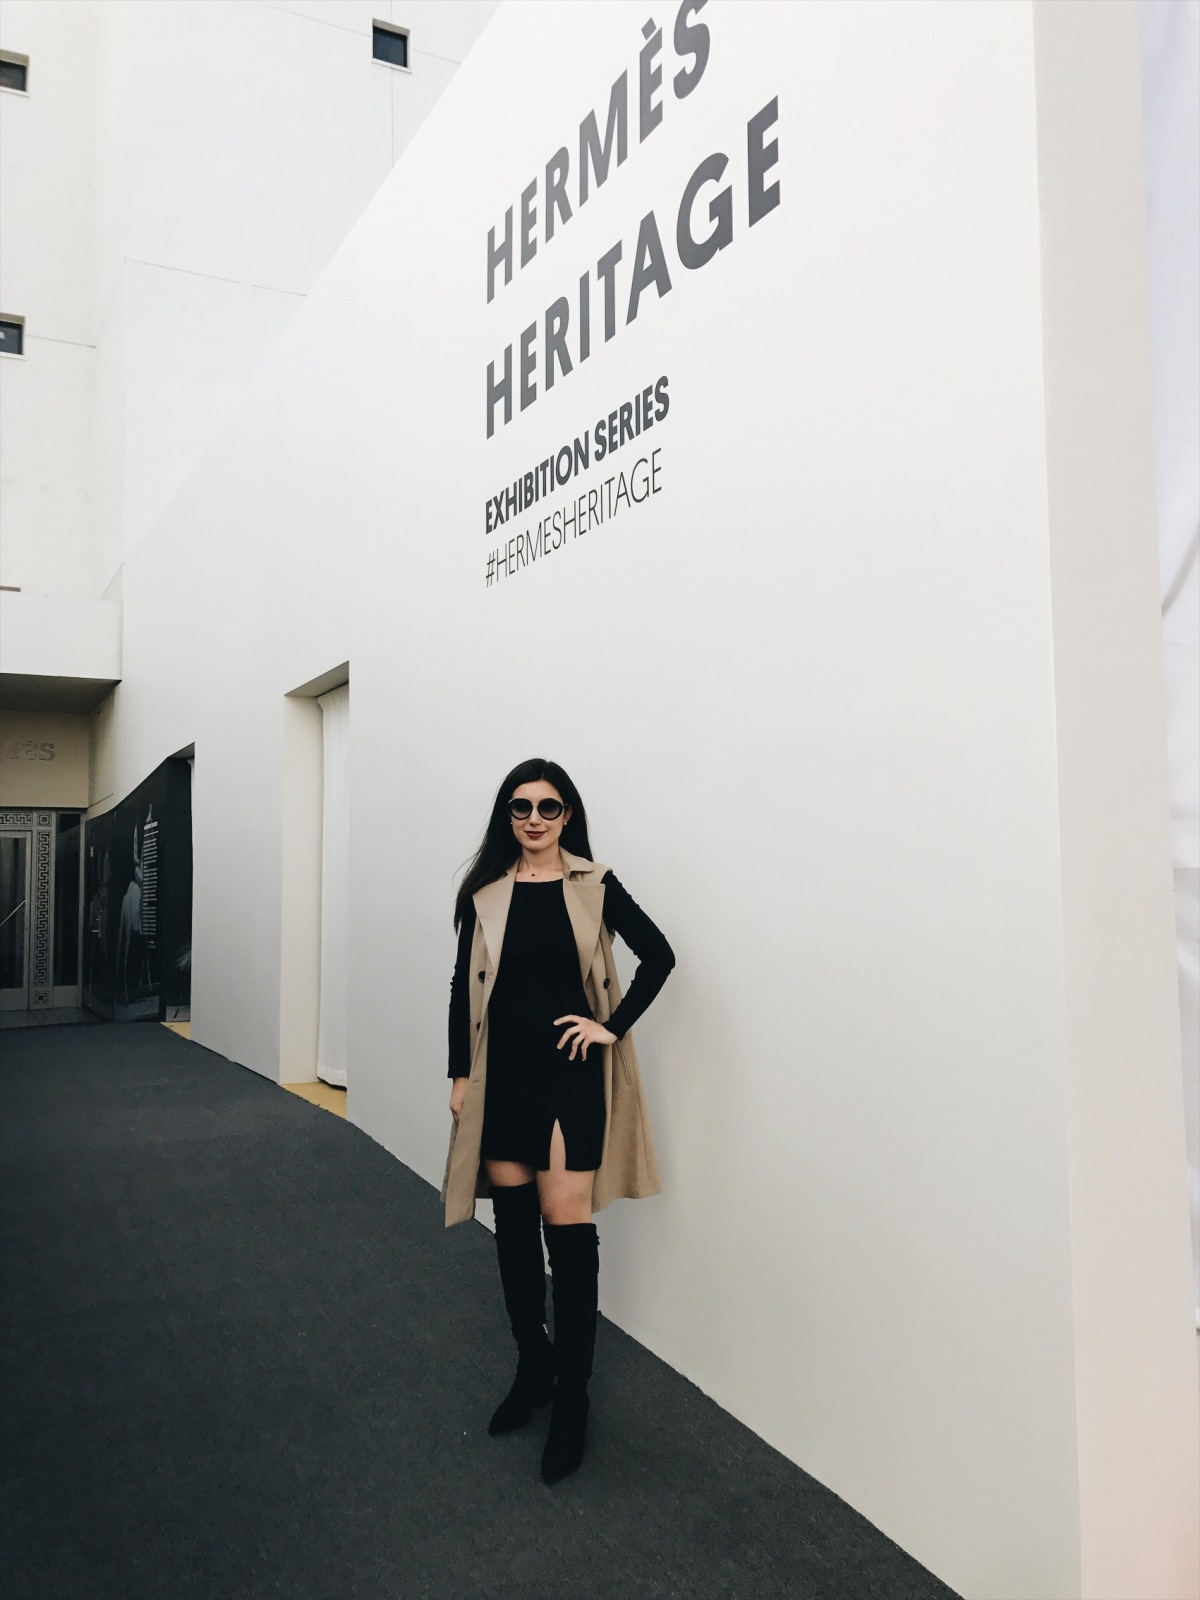 Hermes Heritage Beverly Hills Exhibition, Hermes, fashion, fashion exhibits, museum pop up, high fashion, Los Angeles Beverly Hills, fashion blogger, over-the-knee boots, black suede boots Prada sunglasses, trench coat, black skirt, black crop top